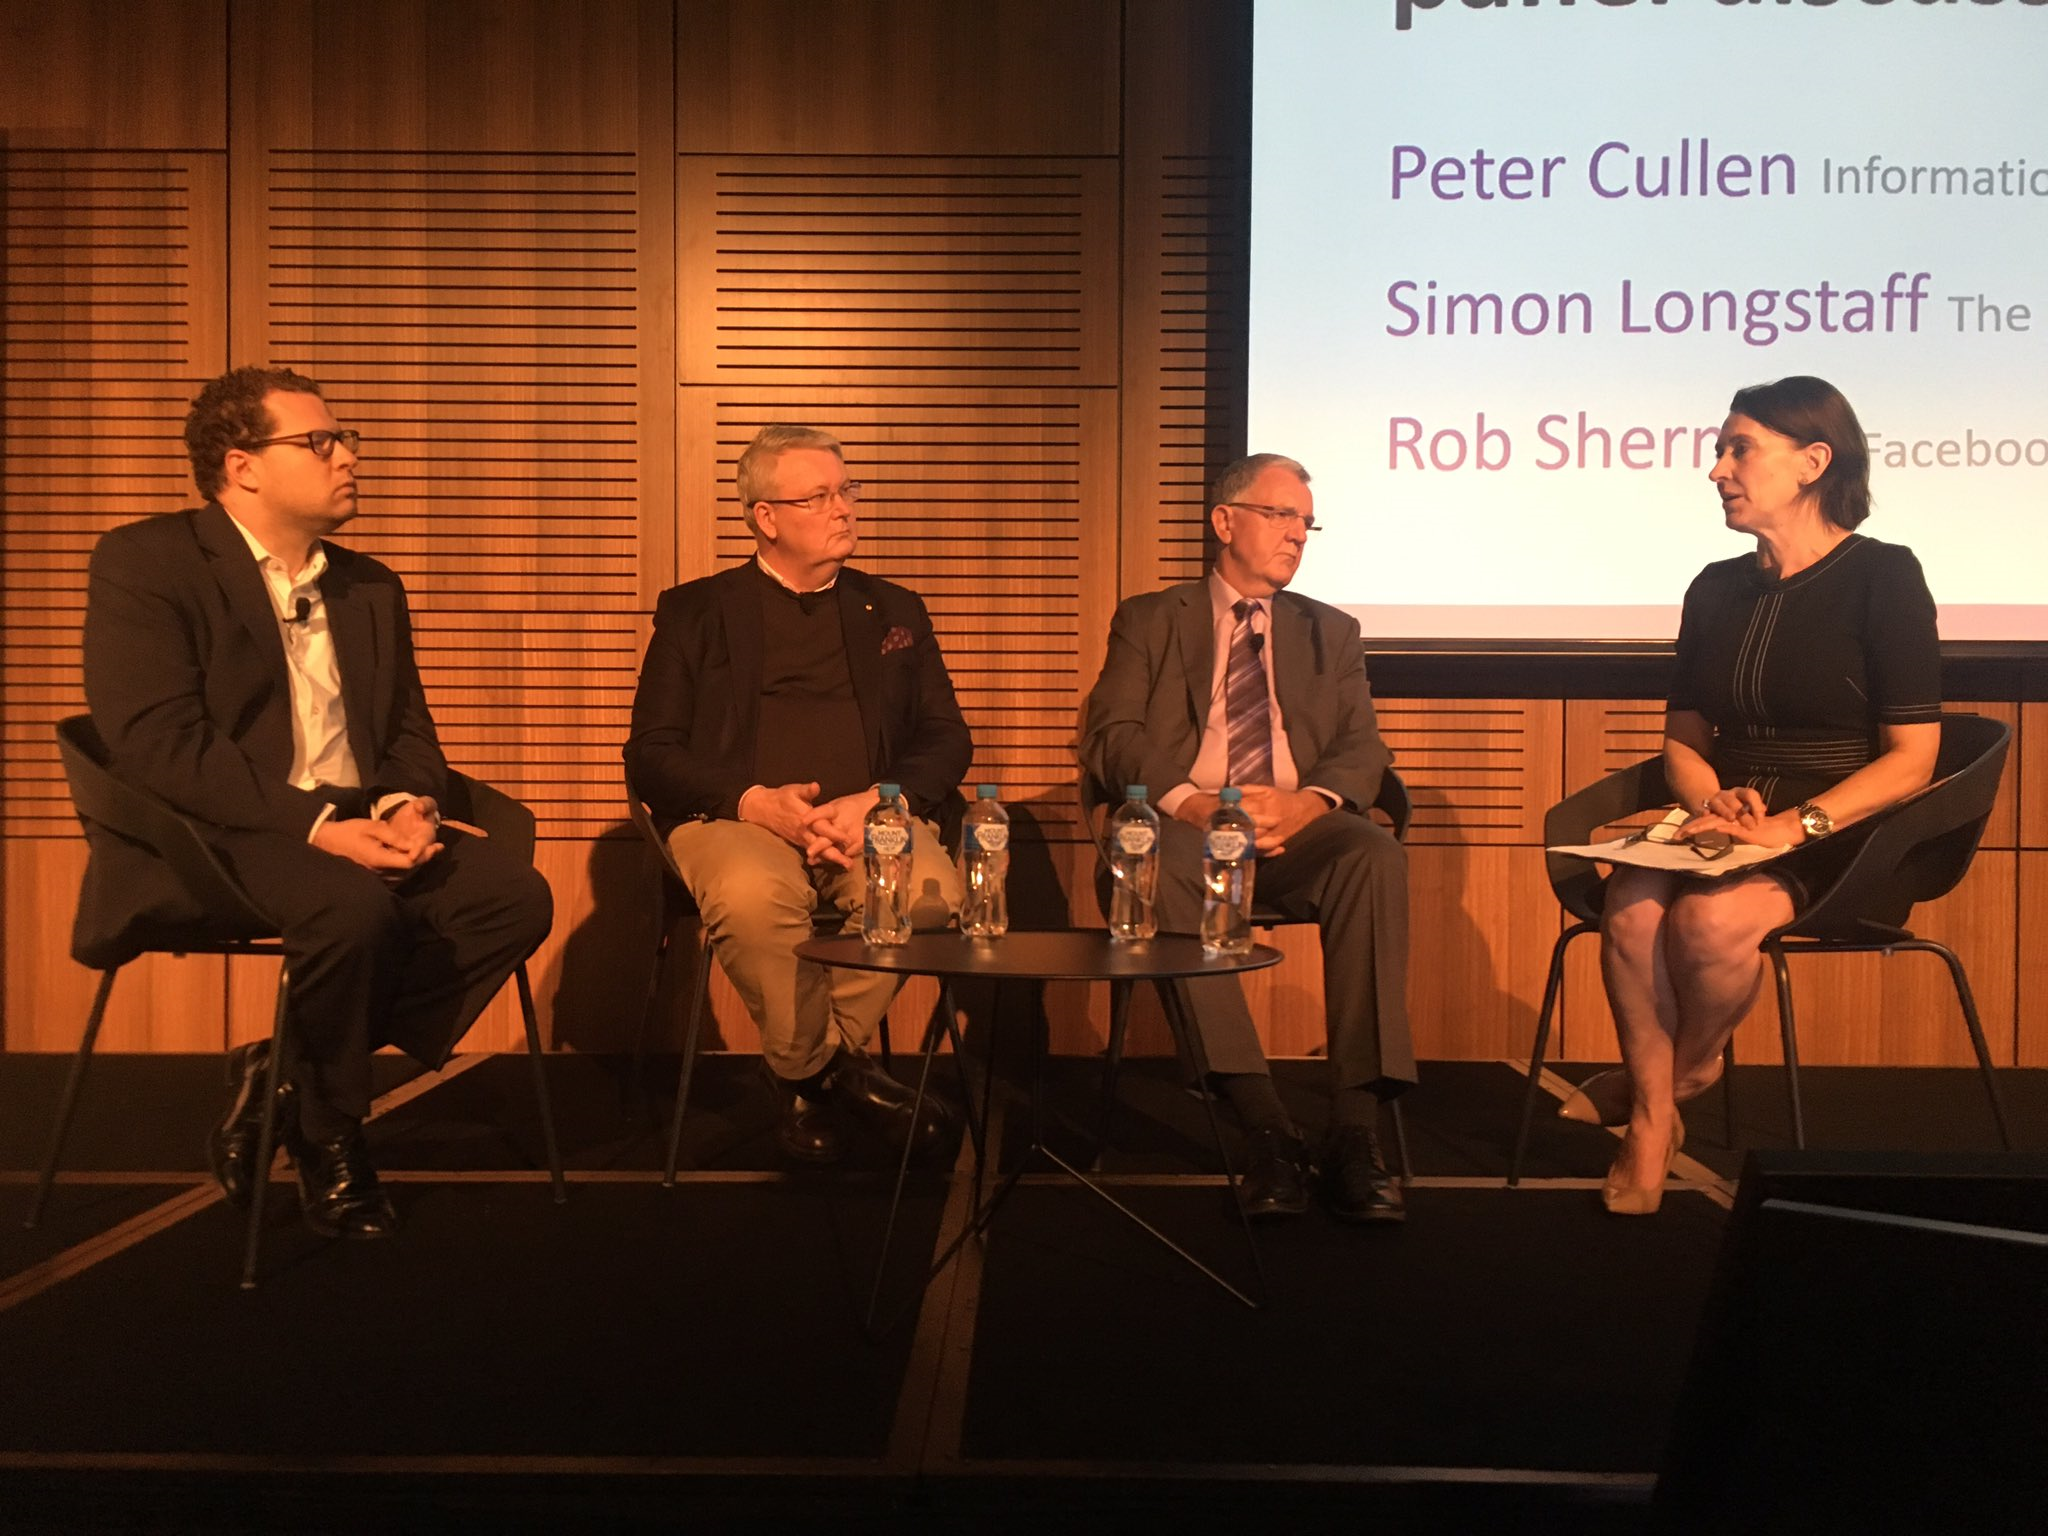 Virginia Trioli, Peter Cullen, Simon Longstaff, and Rob Sherman on a panel discussion at the Data + Privacy Asia Pacific conference